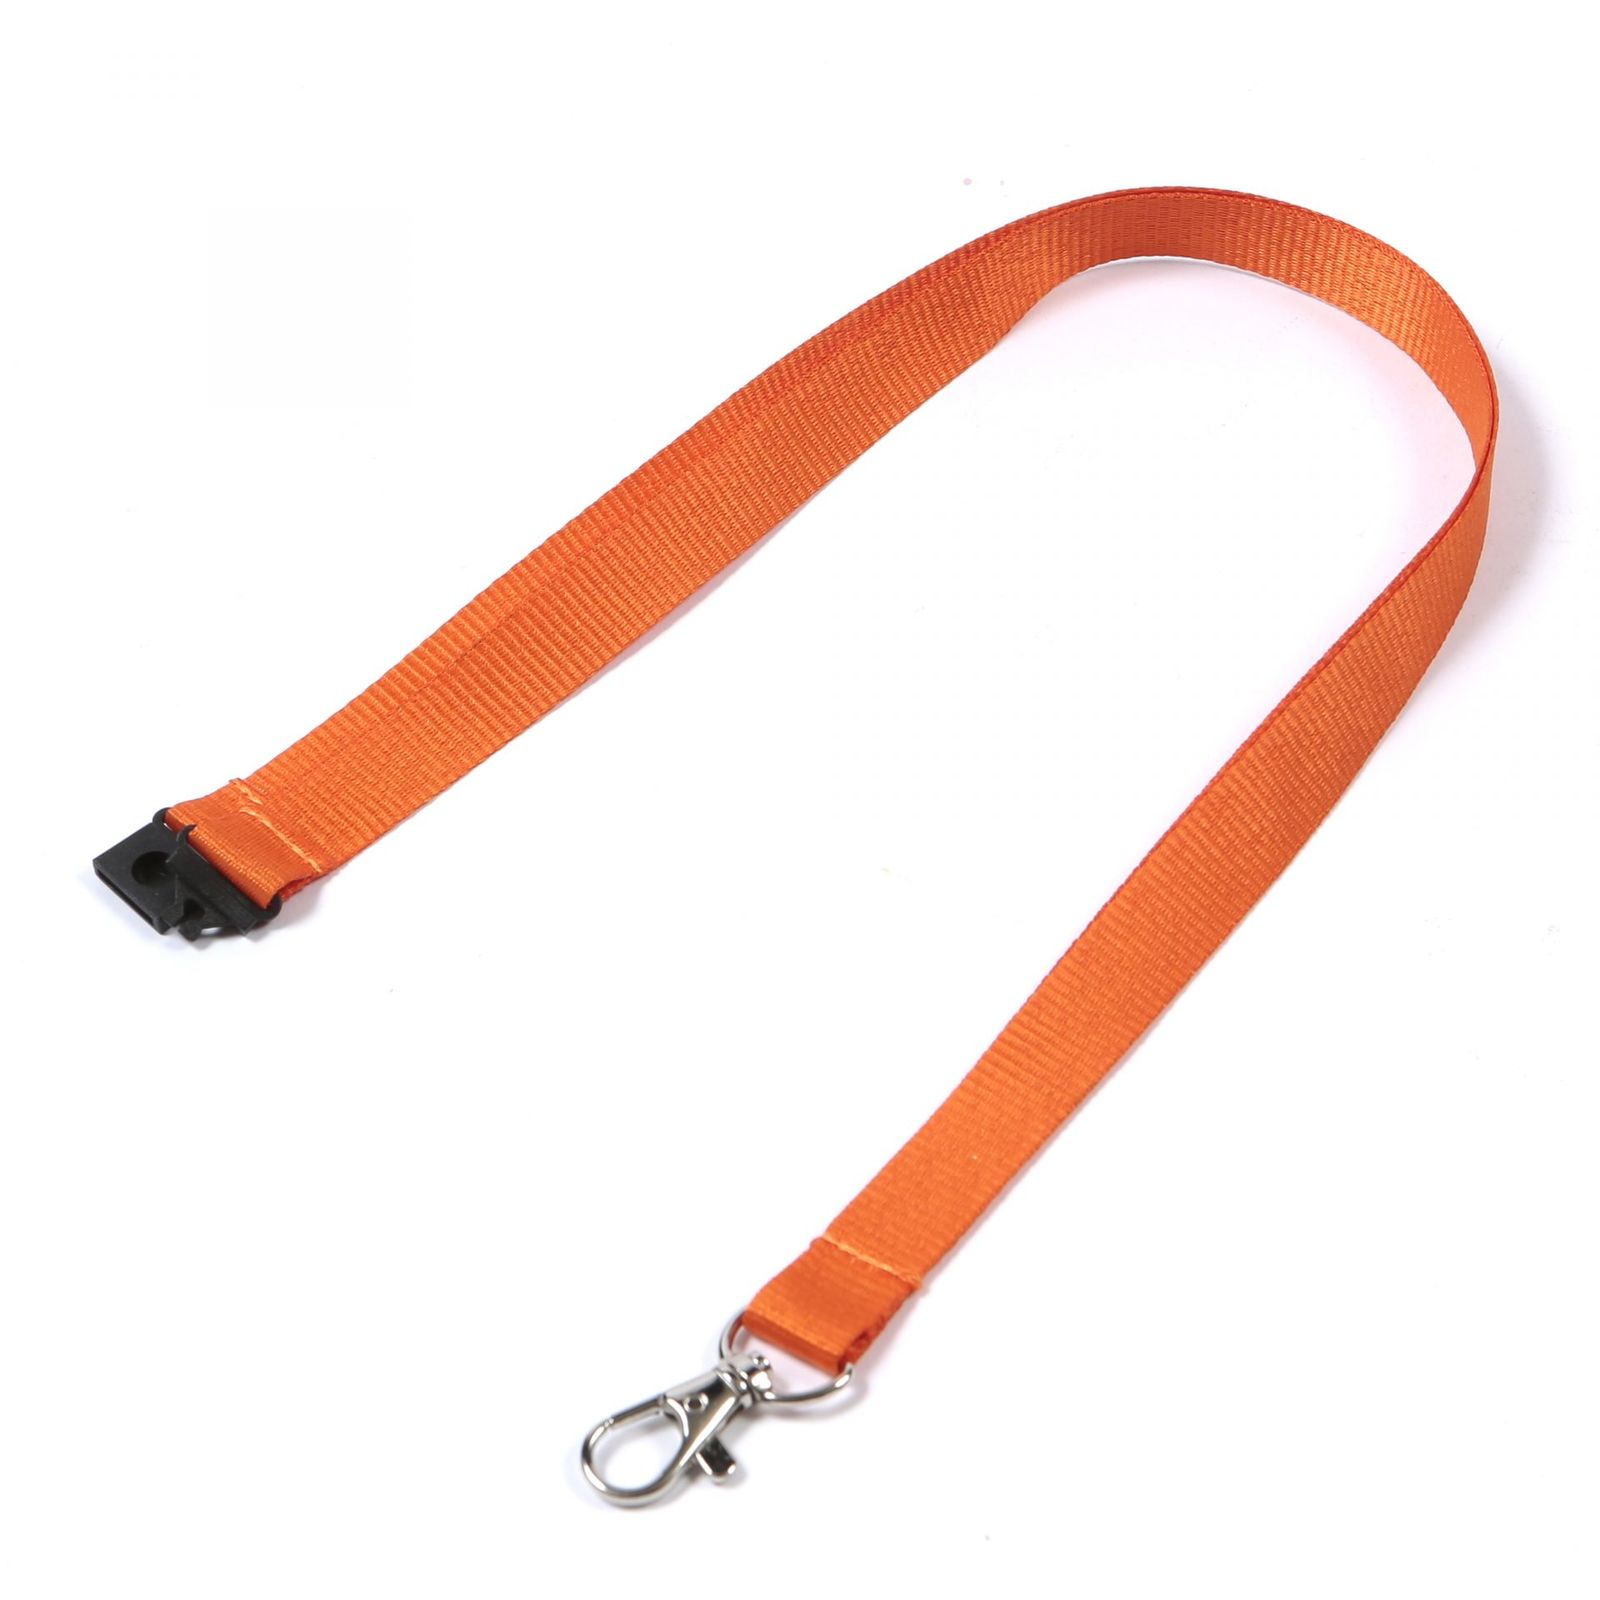 Buy Plain Orange Lanyards on Lanyards Direct Today!